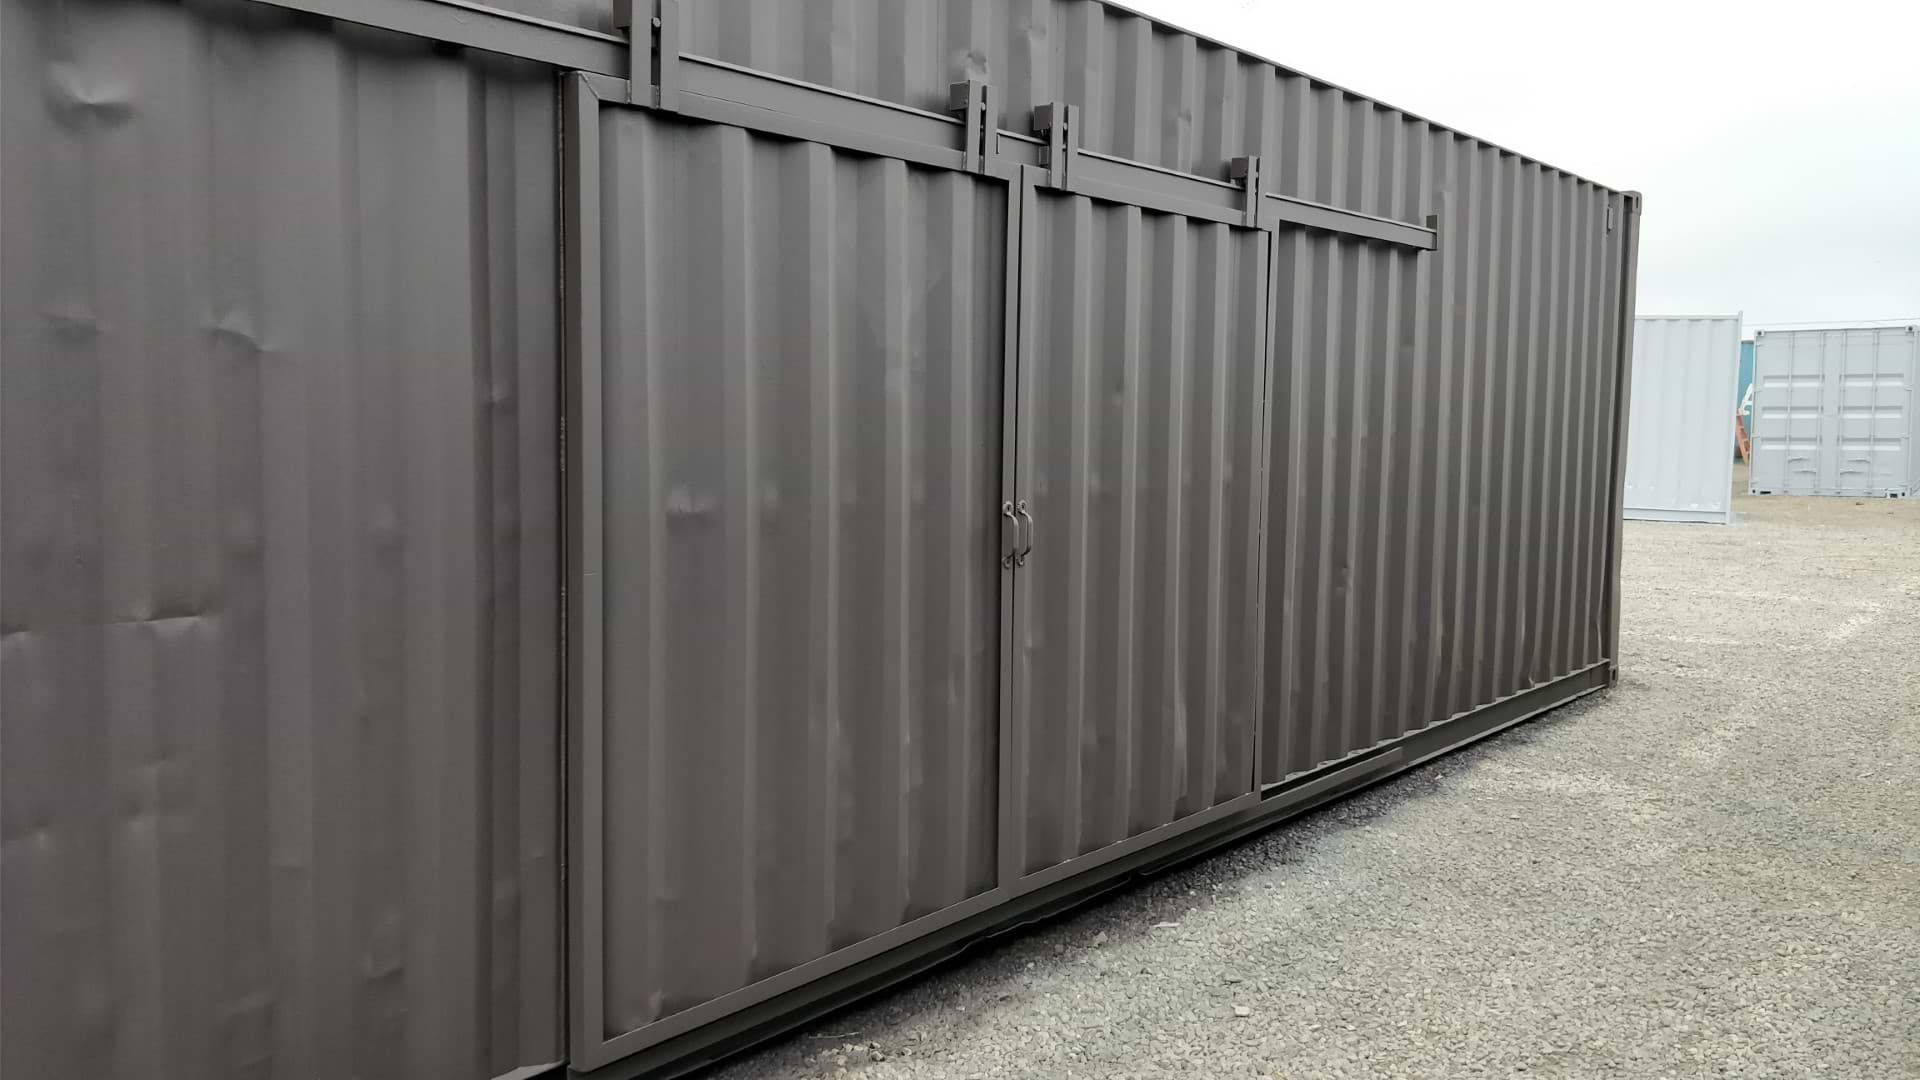 Barn doors for storage containers for sale